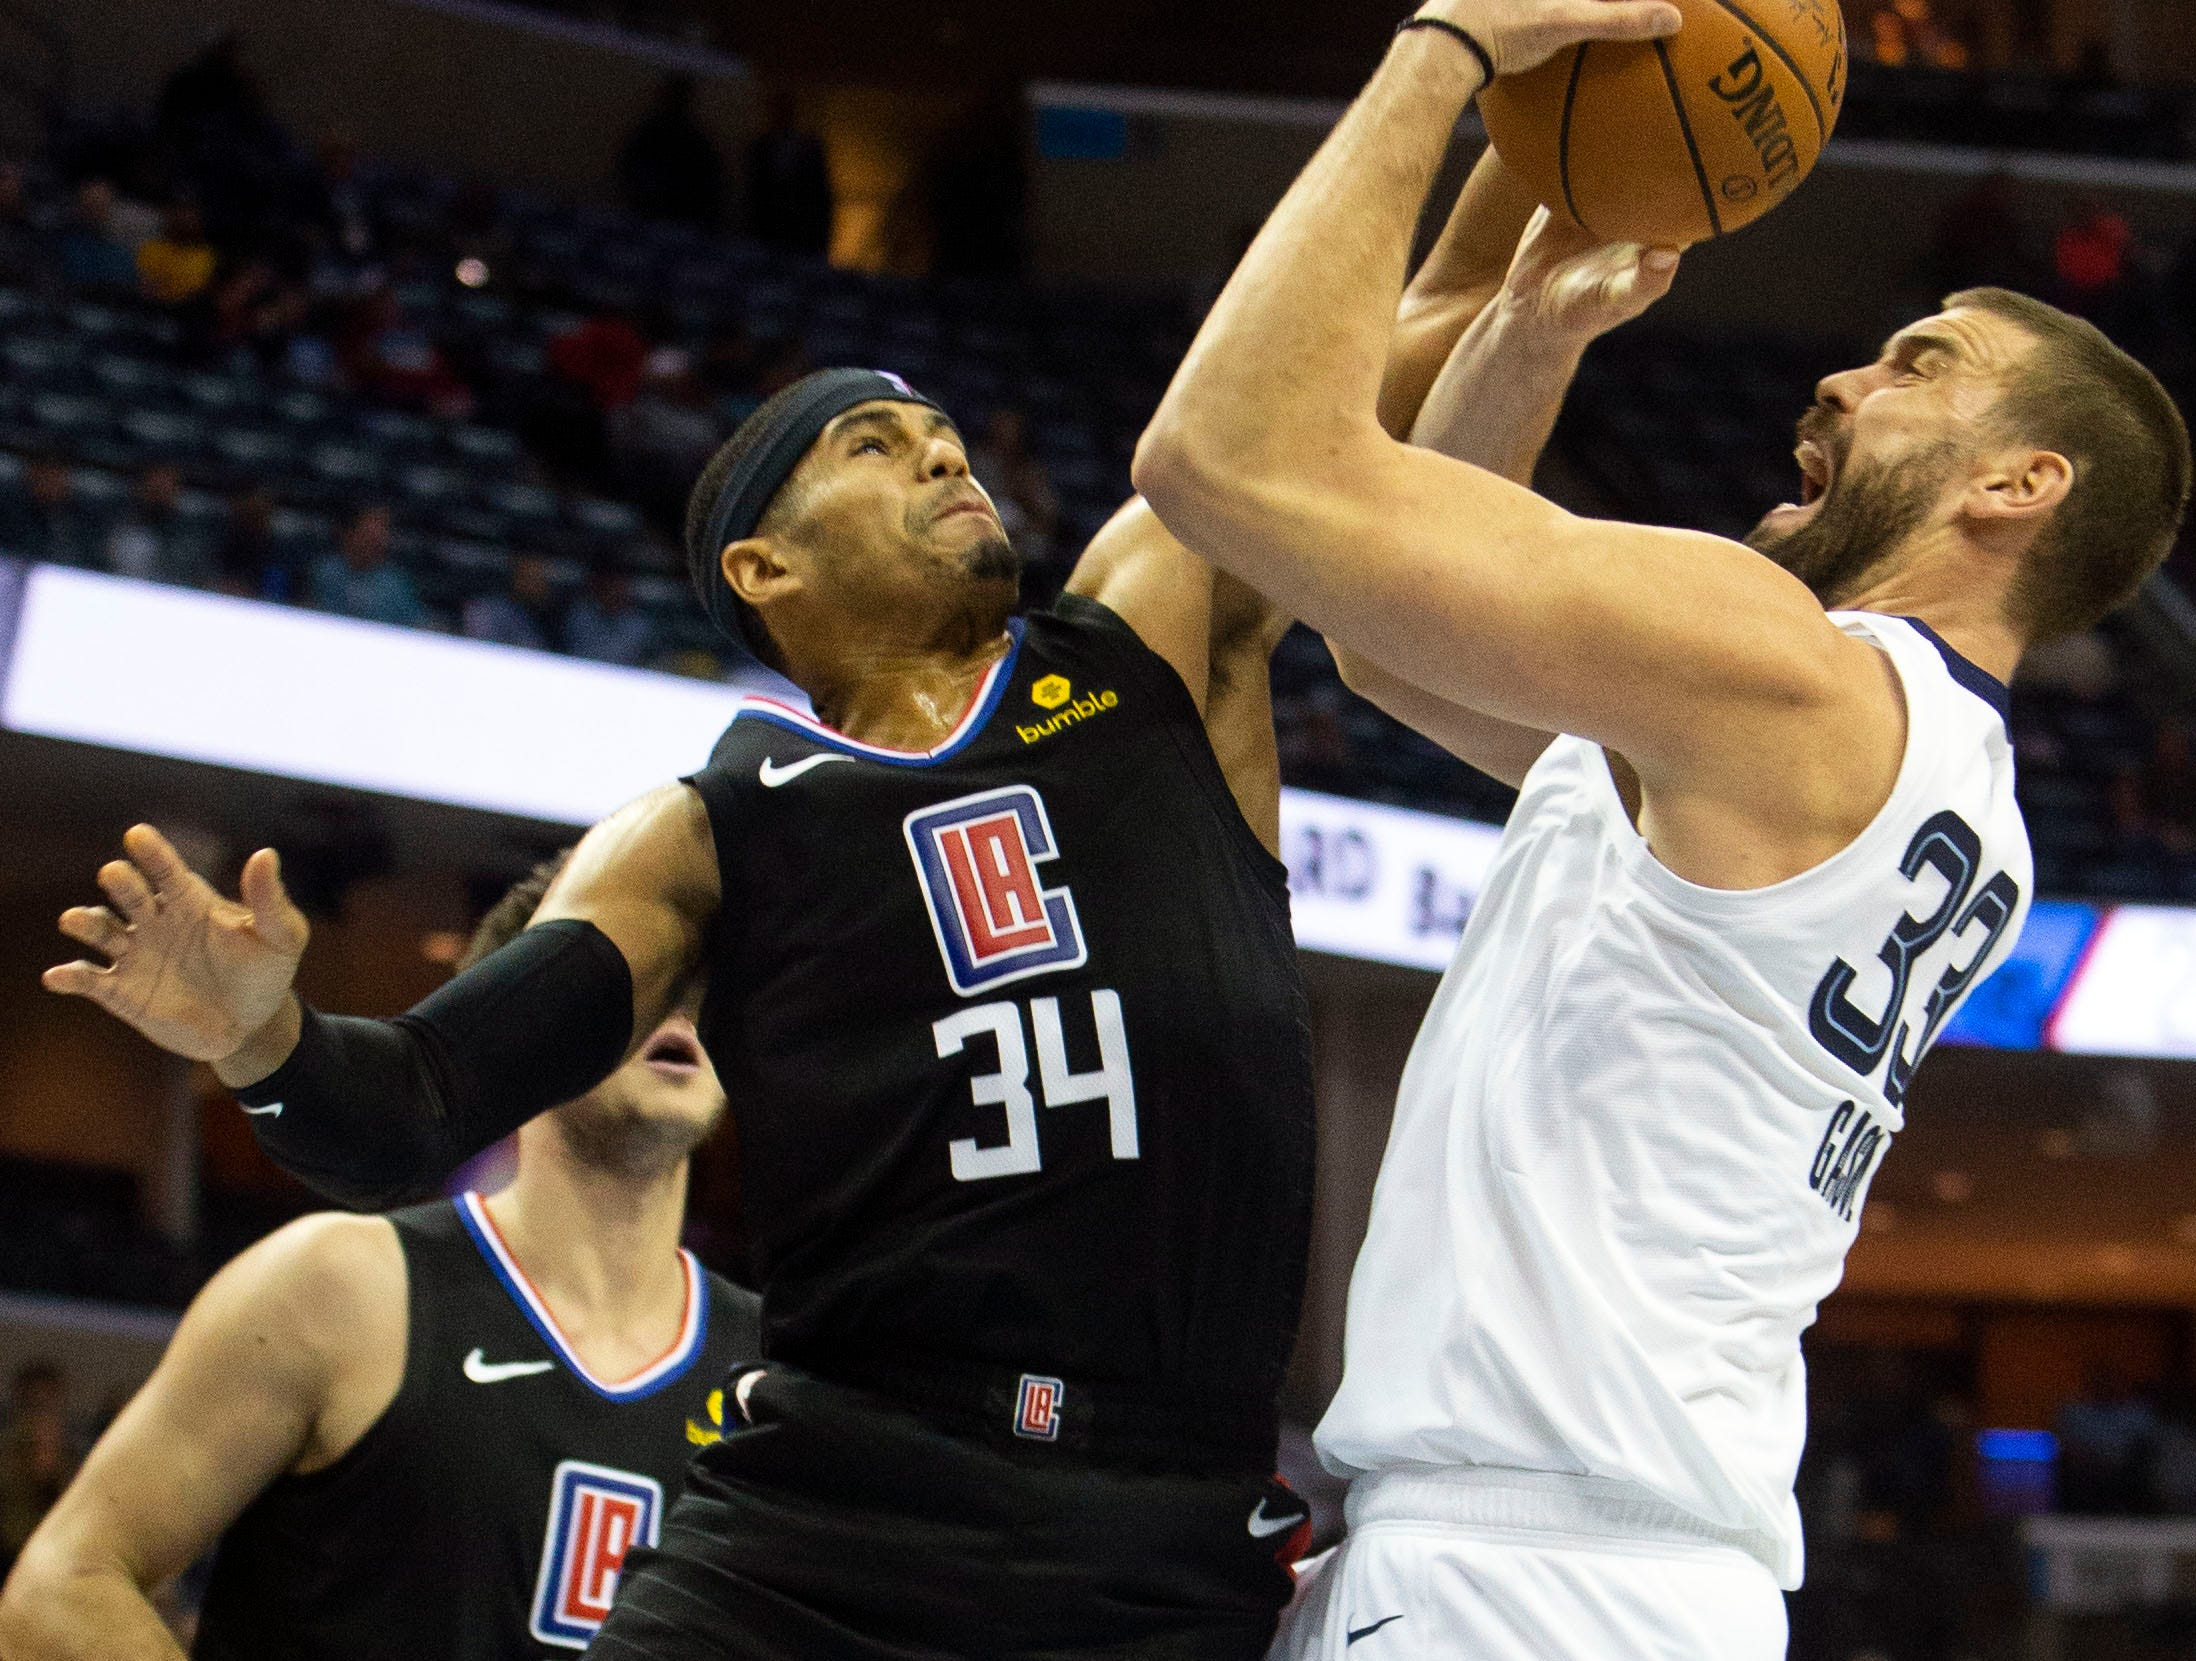 Memphis Grizzles center Marc Gasol (33) shoots over Los  Angeles Clippers forward Tobias Harris (34) during the first half of  a NBA basketball game between the Memphis Grizzlies and the  Los Angeles Clippers in the Fedex Forum, Wednesday, Dec. 5, 2018.